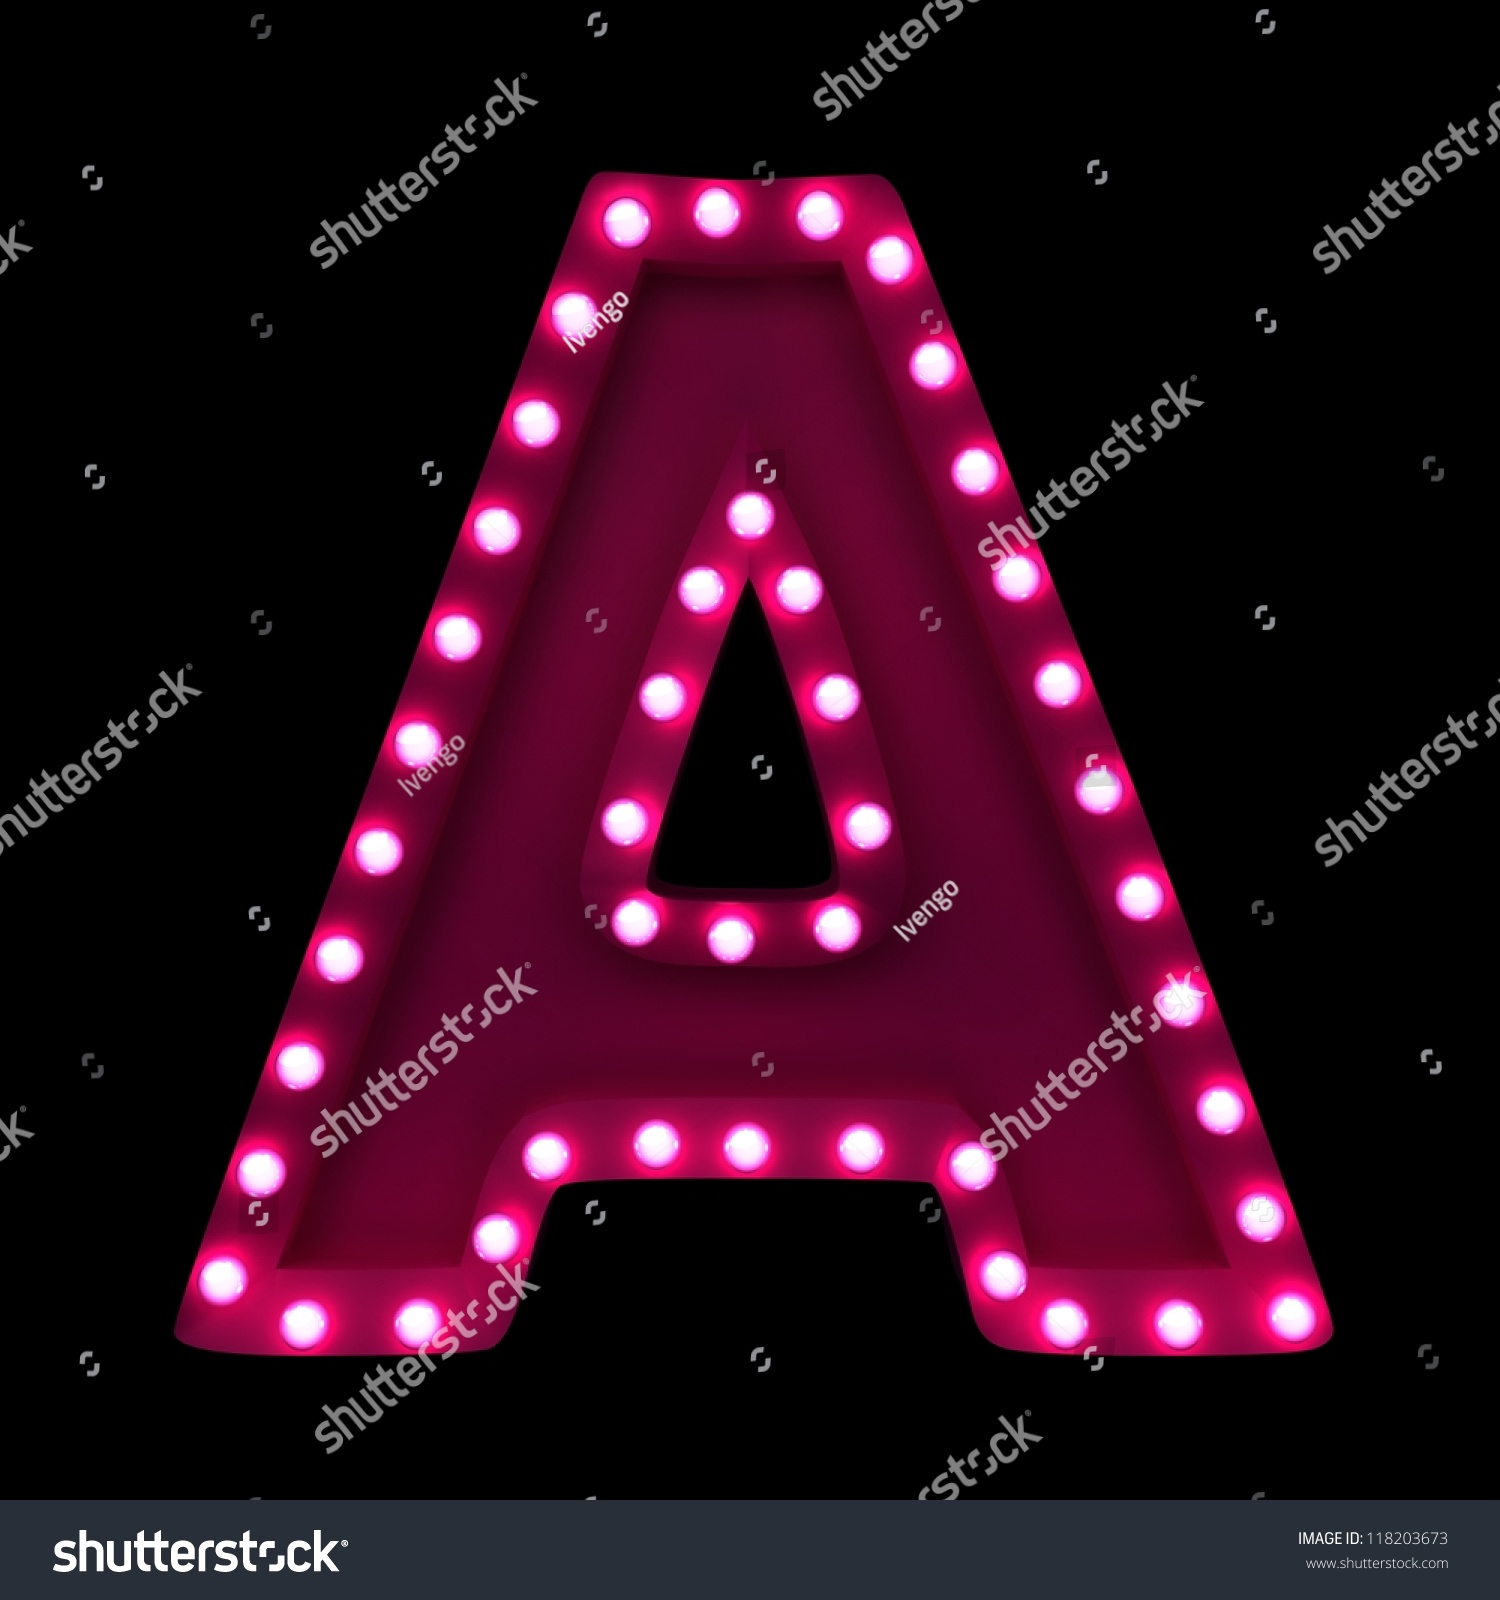 printable capital letters. the letter a by lite brite neon. the ...